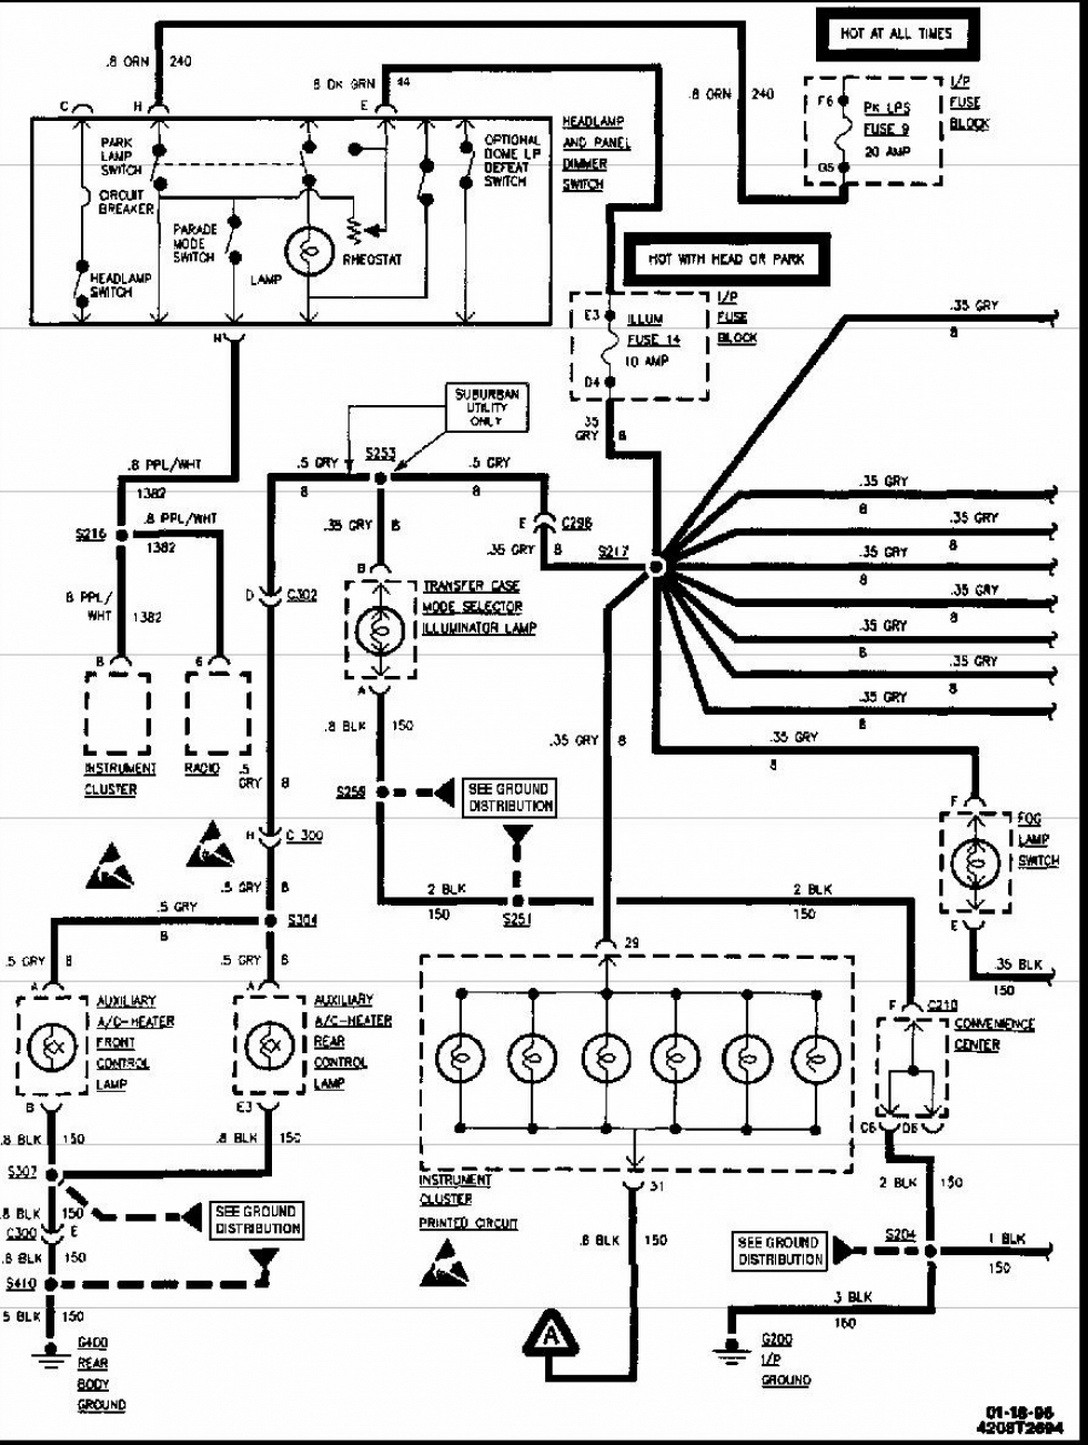 1997 Corvette Wiring Diagram Trusted Diagrams 1957 Free Picture Schematic Of Hvac System On Coupe 1959